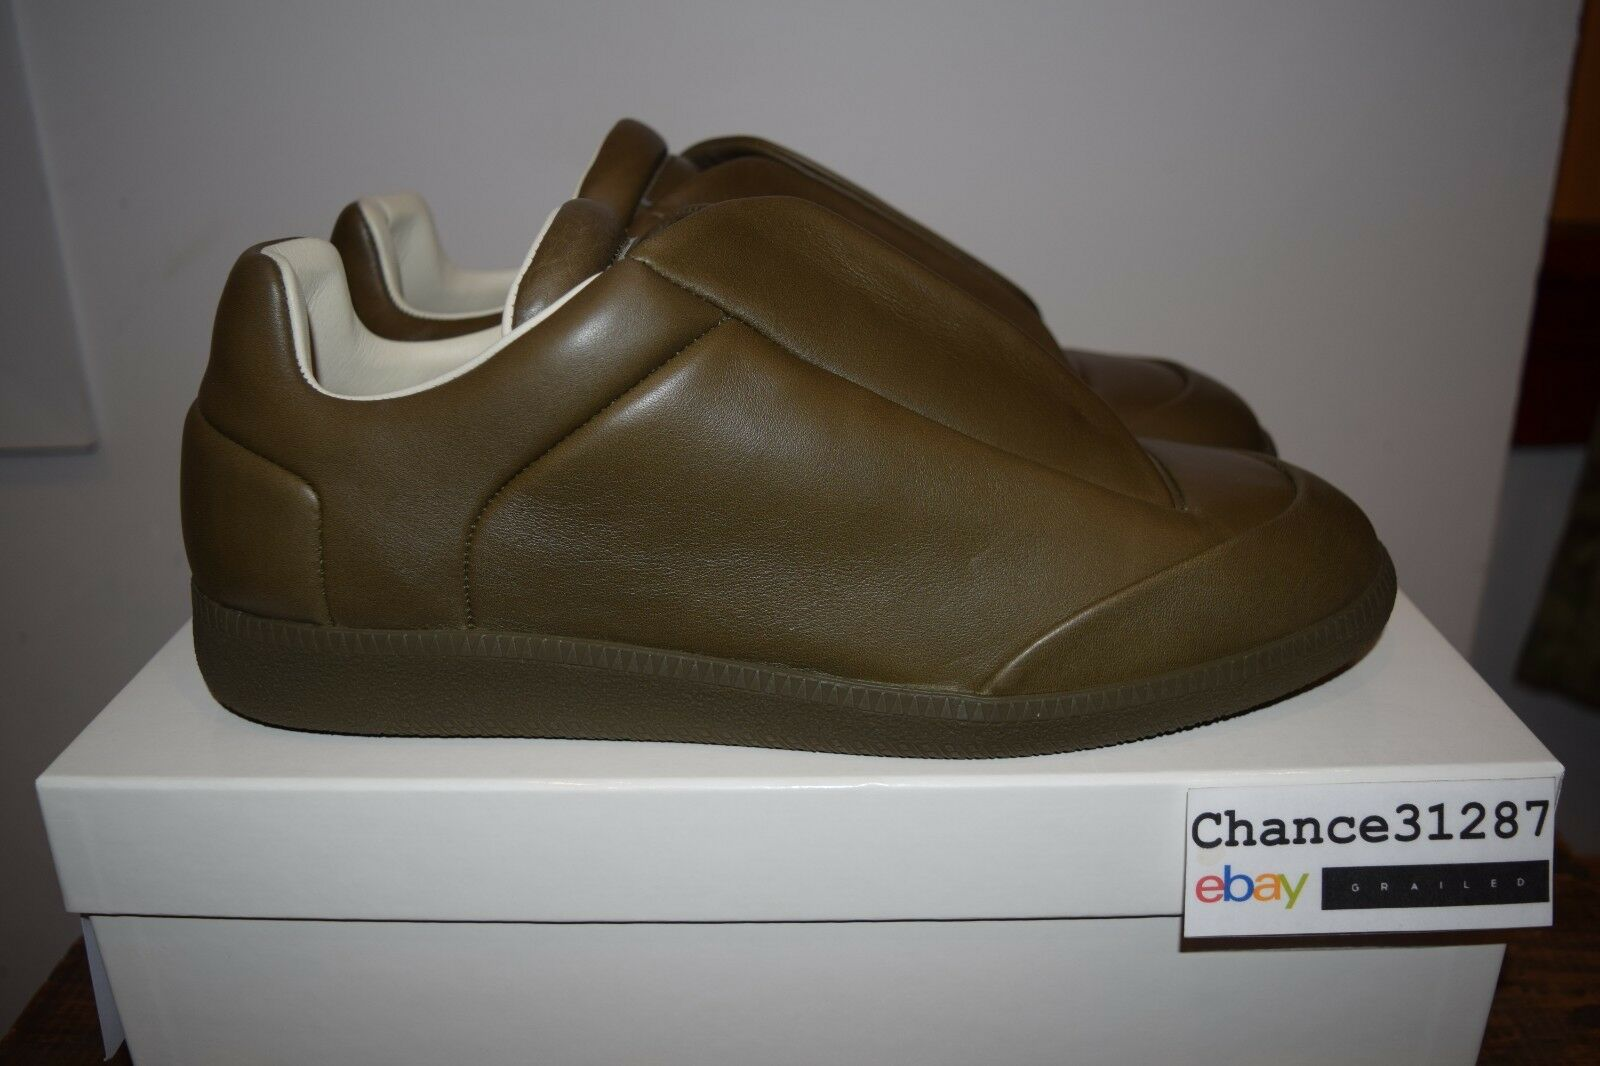 Maison Margiela 22 Leather Future Low Sneakers in Truffle sz. 44   11 DS